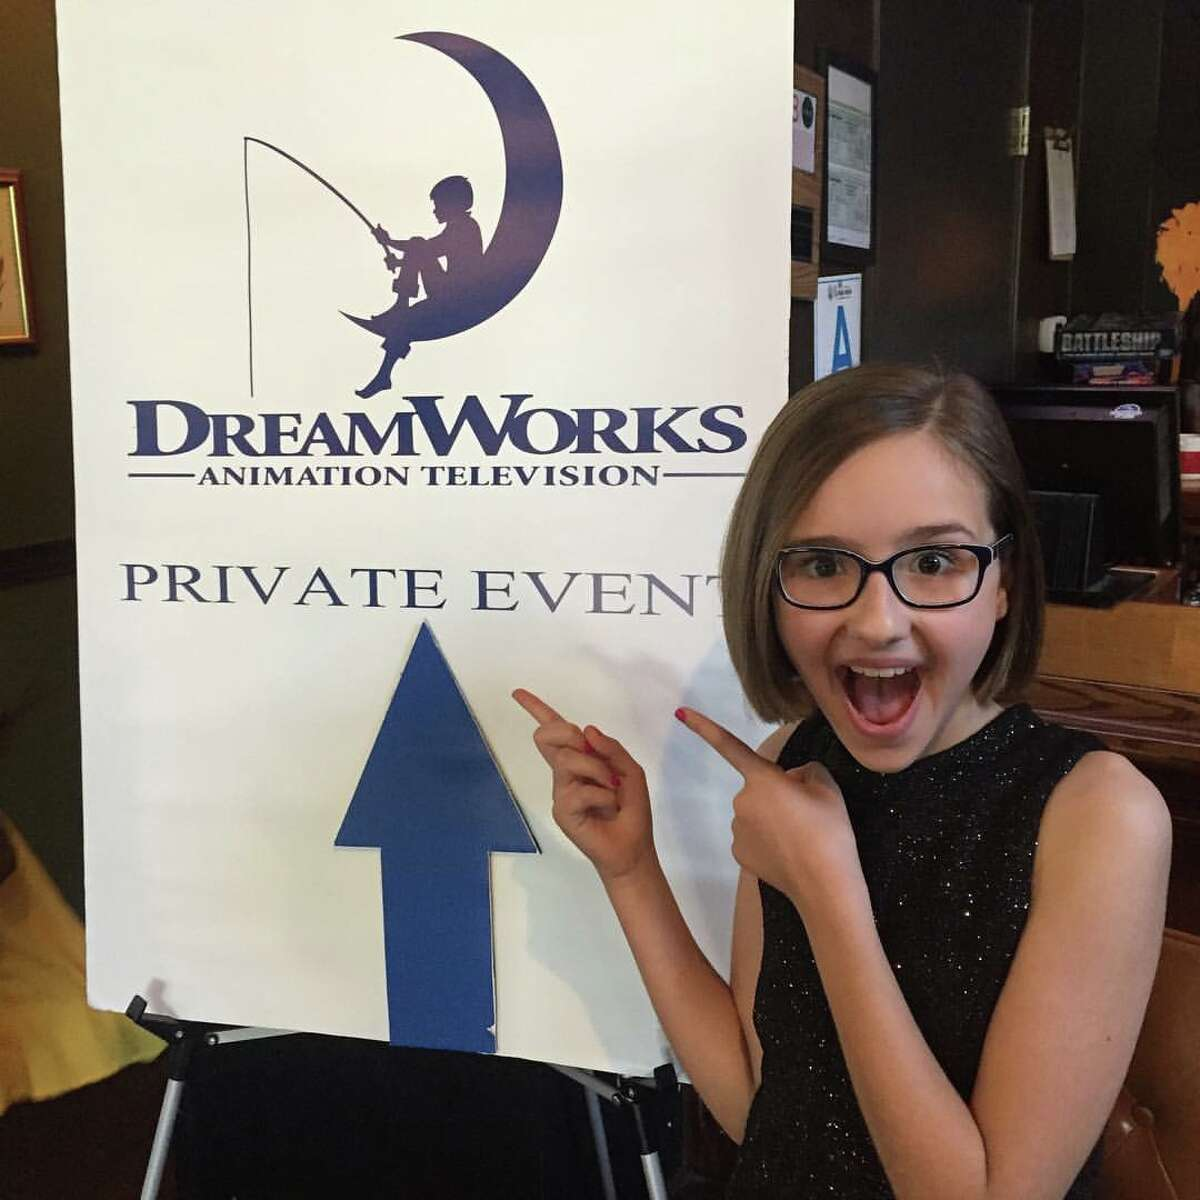 San Antonio native Gabriella Graves has scored a new Netflix series from DreamWorks that bows on Friday.